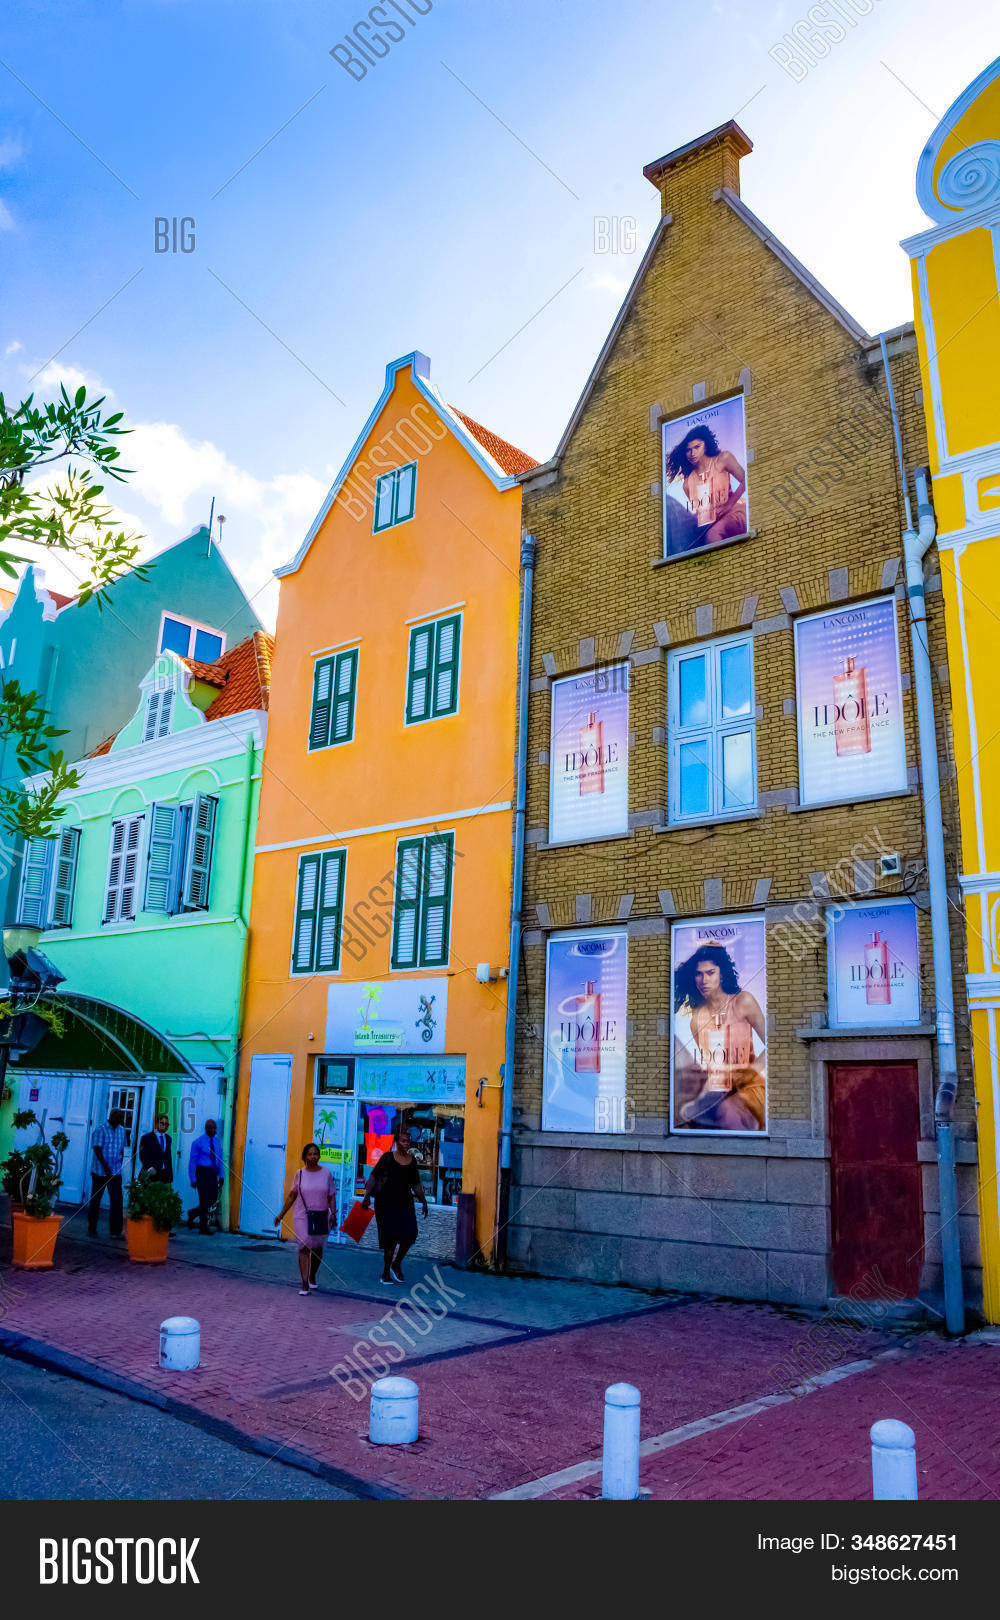 Willemstad, Curacao, Netherlands - December 5, 2019: People At Street With Specific Coloured Buildin